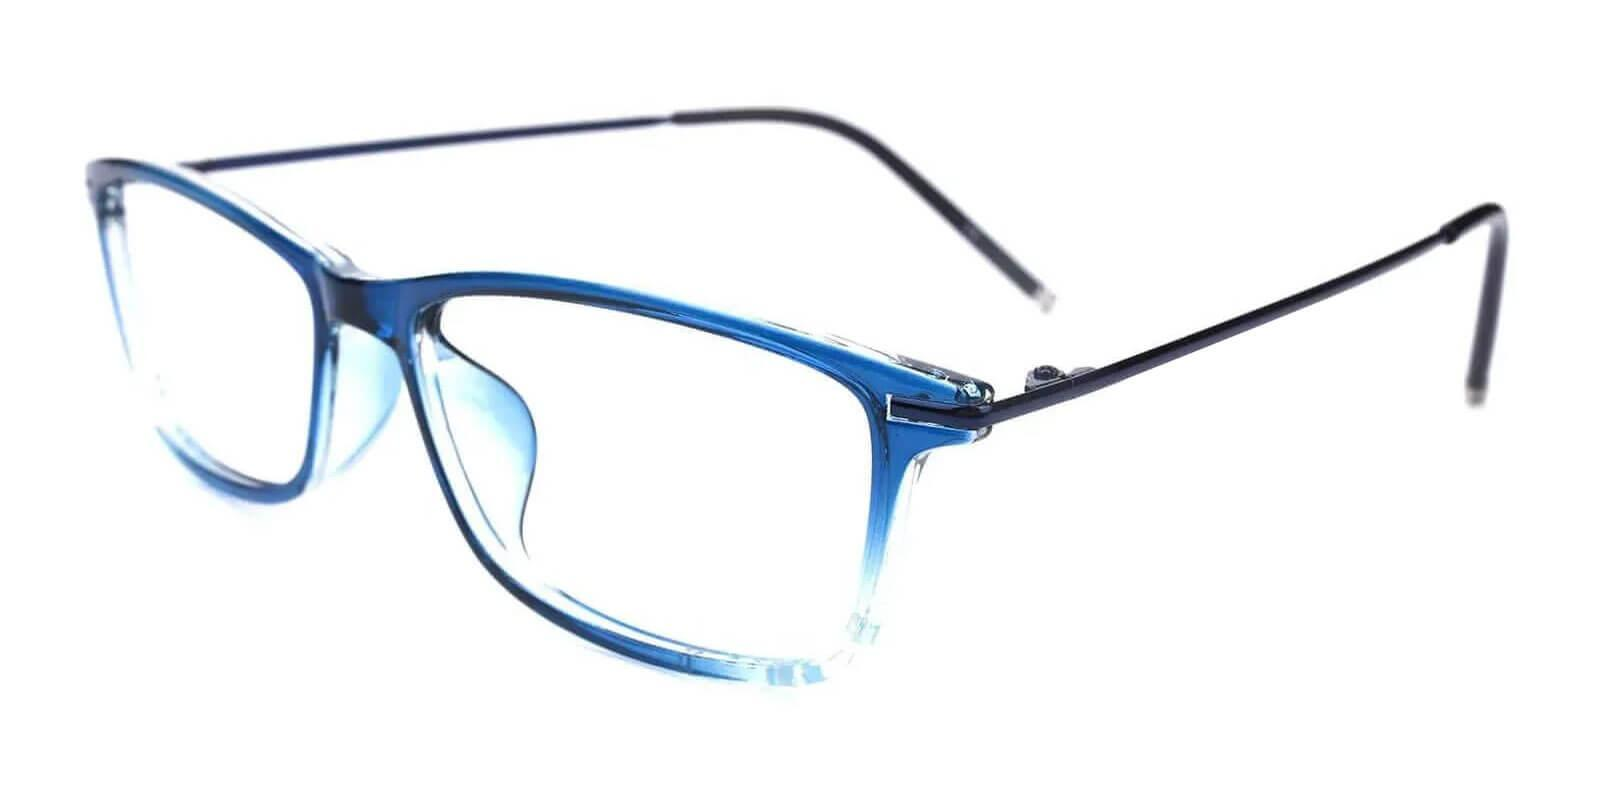 Radcliffe Blue TR Eyeglasses , Lightweight , UniversalBridgeFit Frames from ABBE Glasses